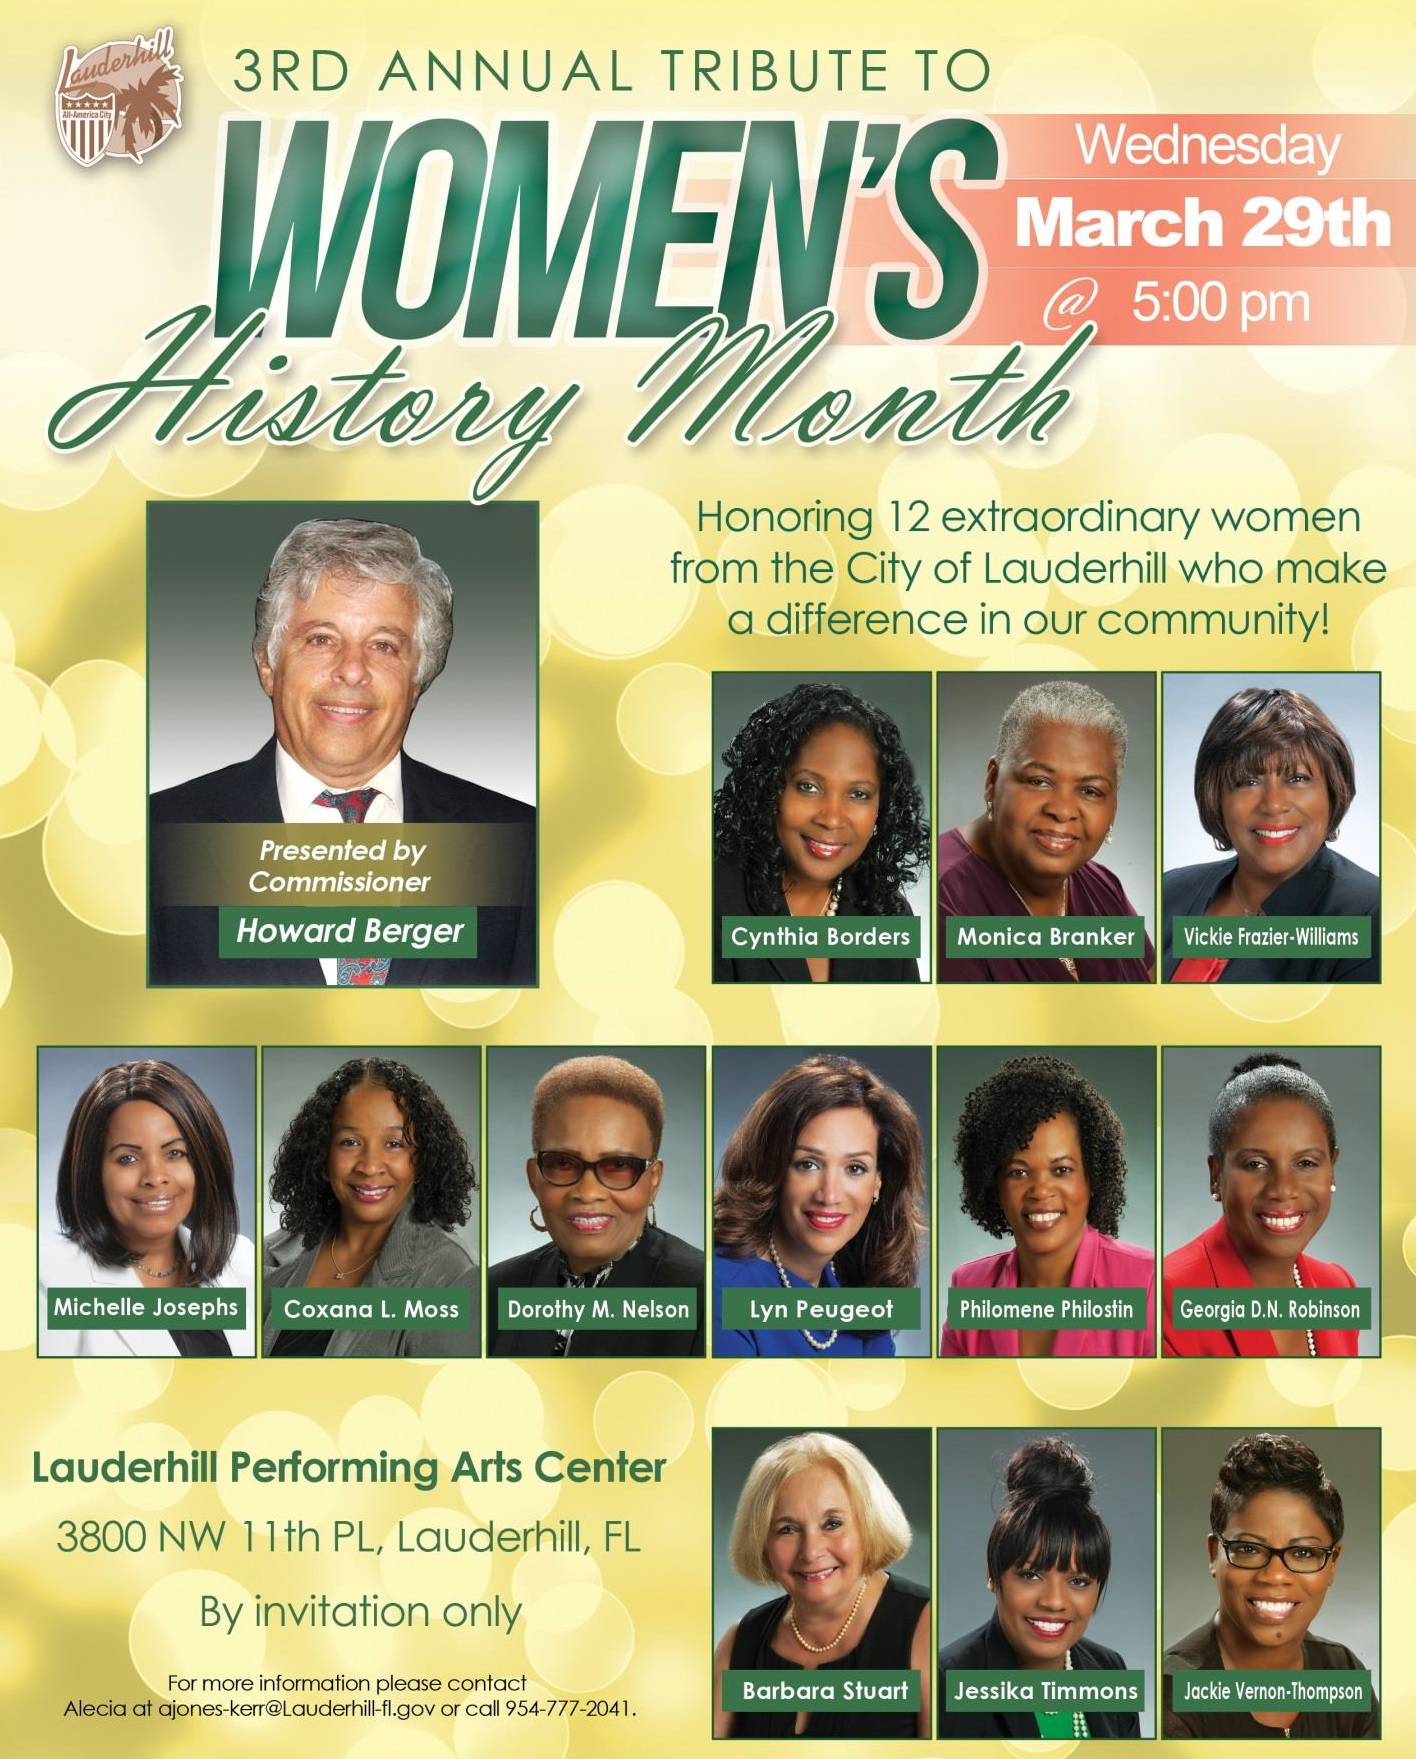 2017 Women's History Event Flyer - 3rd Annual